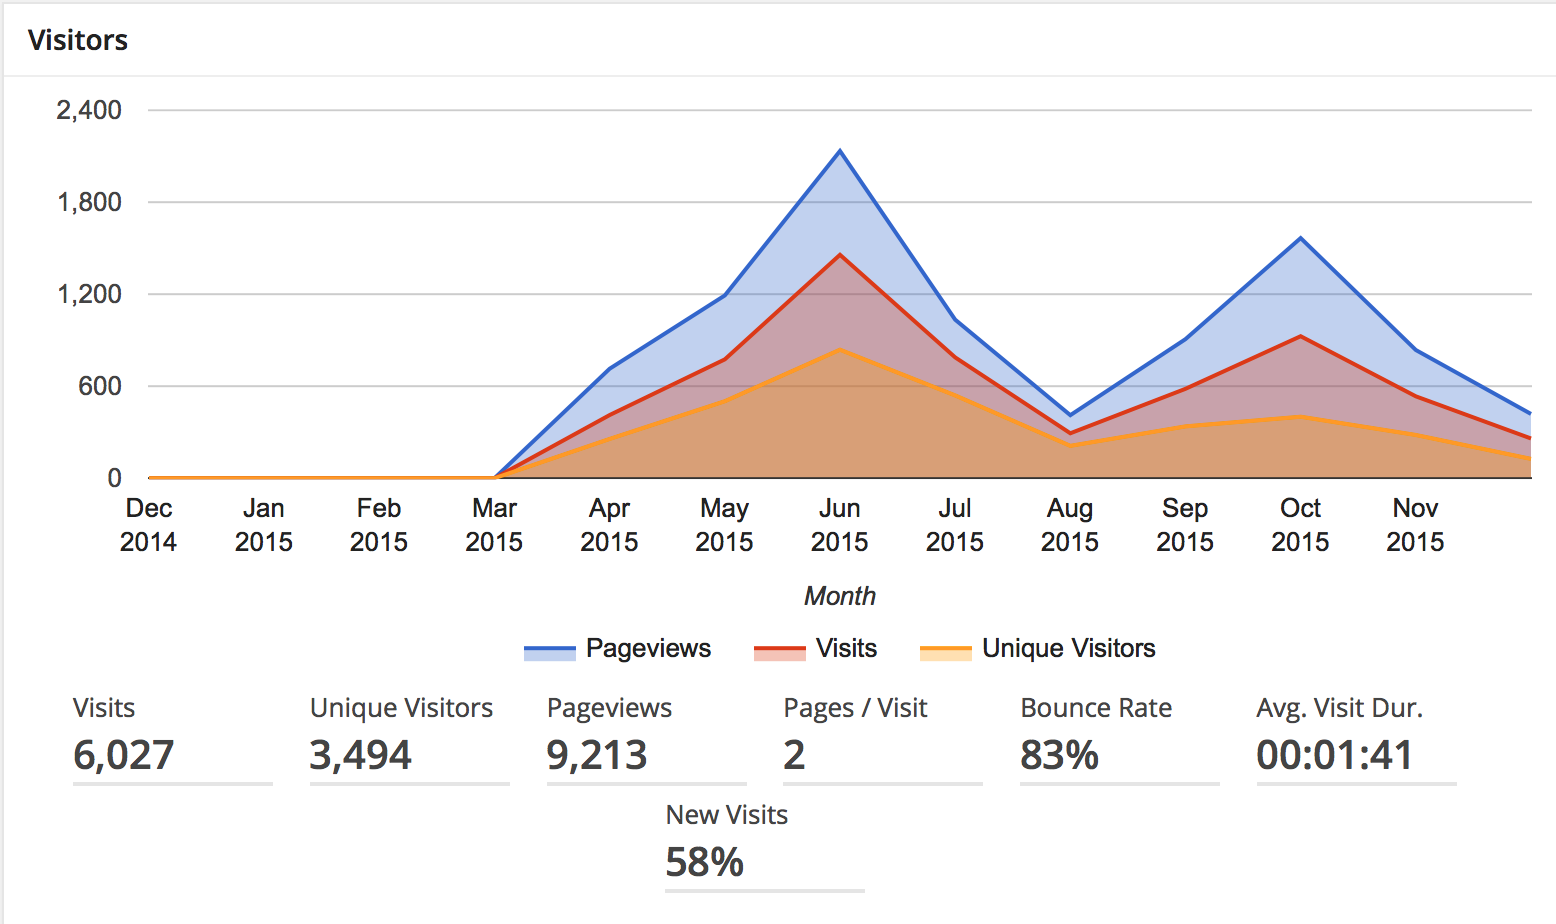 Visitor statistics of the #citylis blog https://blogs.city.ac.uk/citylis/ as of 18/12/2015 at 09.57.36 AM GMT